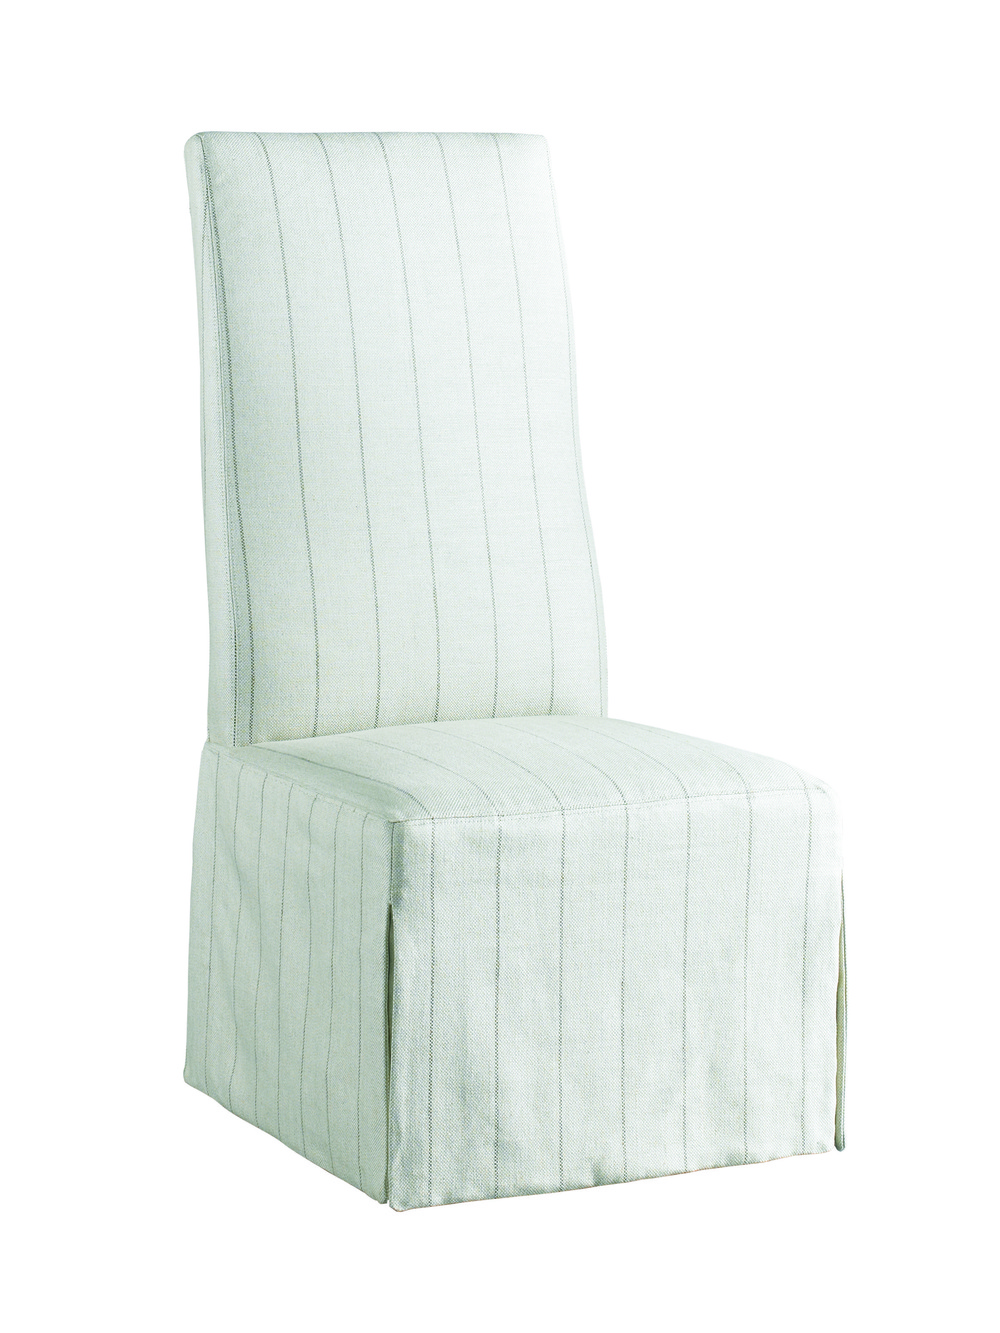 Lillian August Fine Furniture - Royale Dining Chair